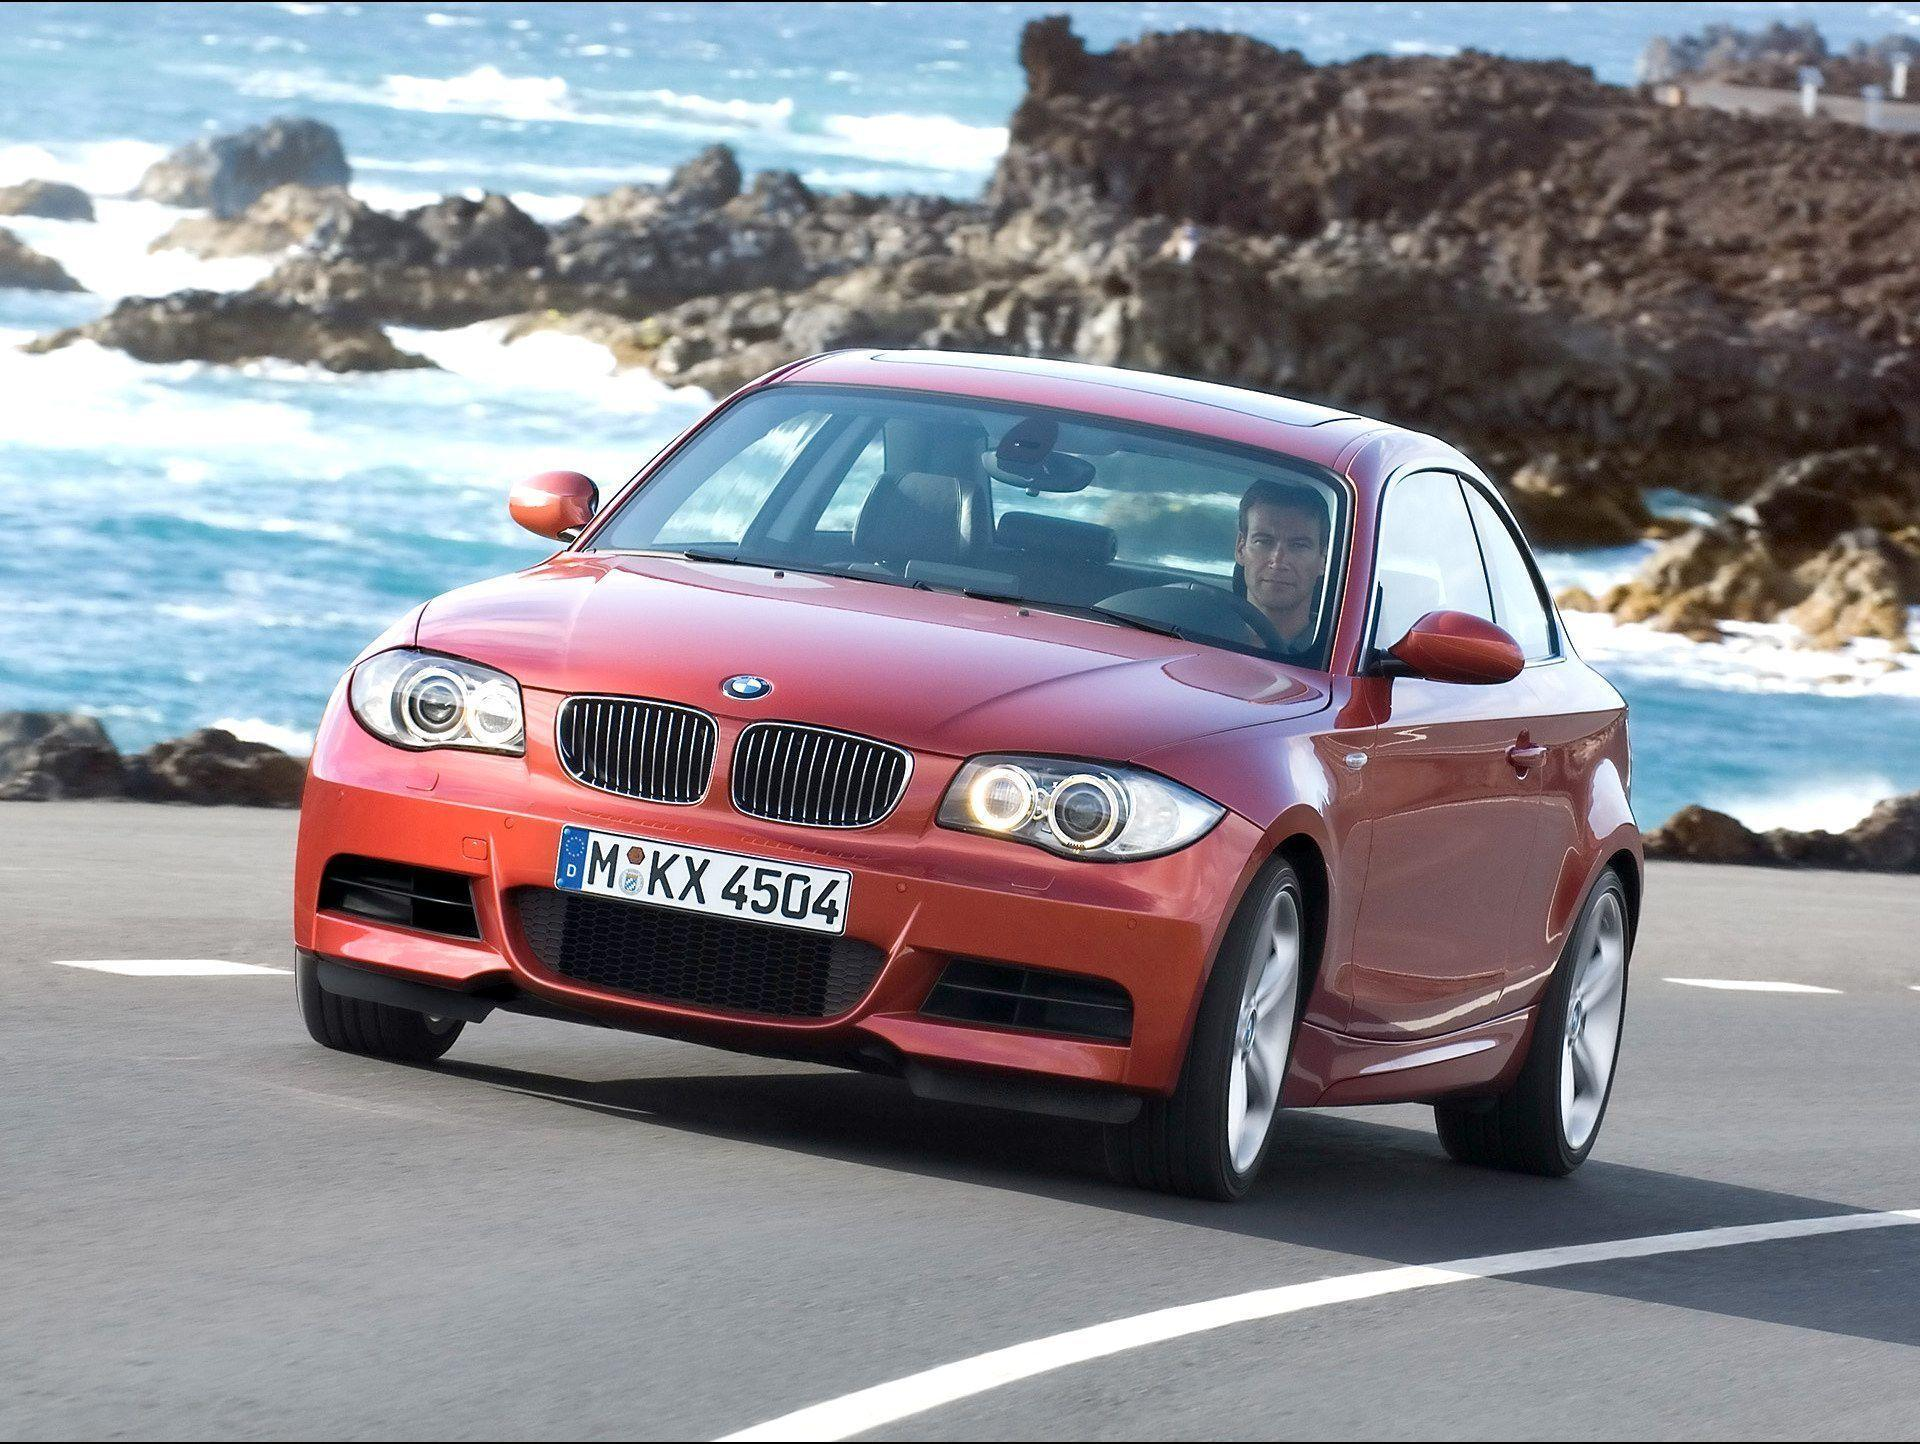 2008 BMW 1 Series Coupe Wallpaper 12 - 1920x1440